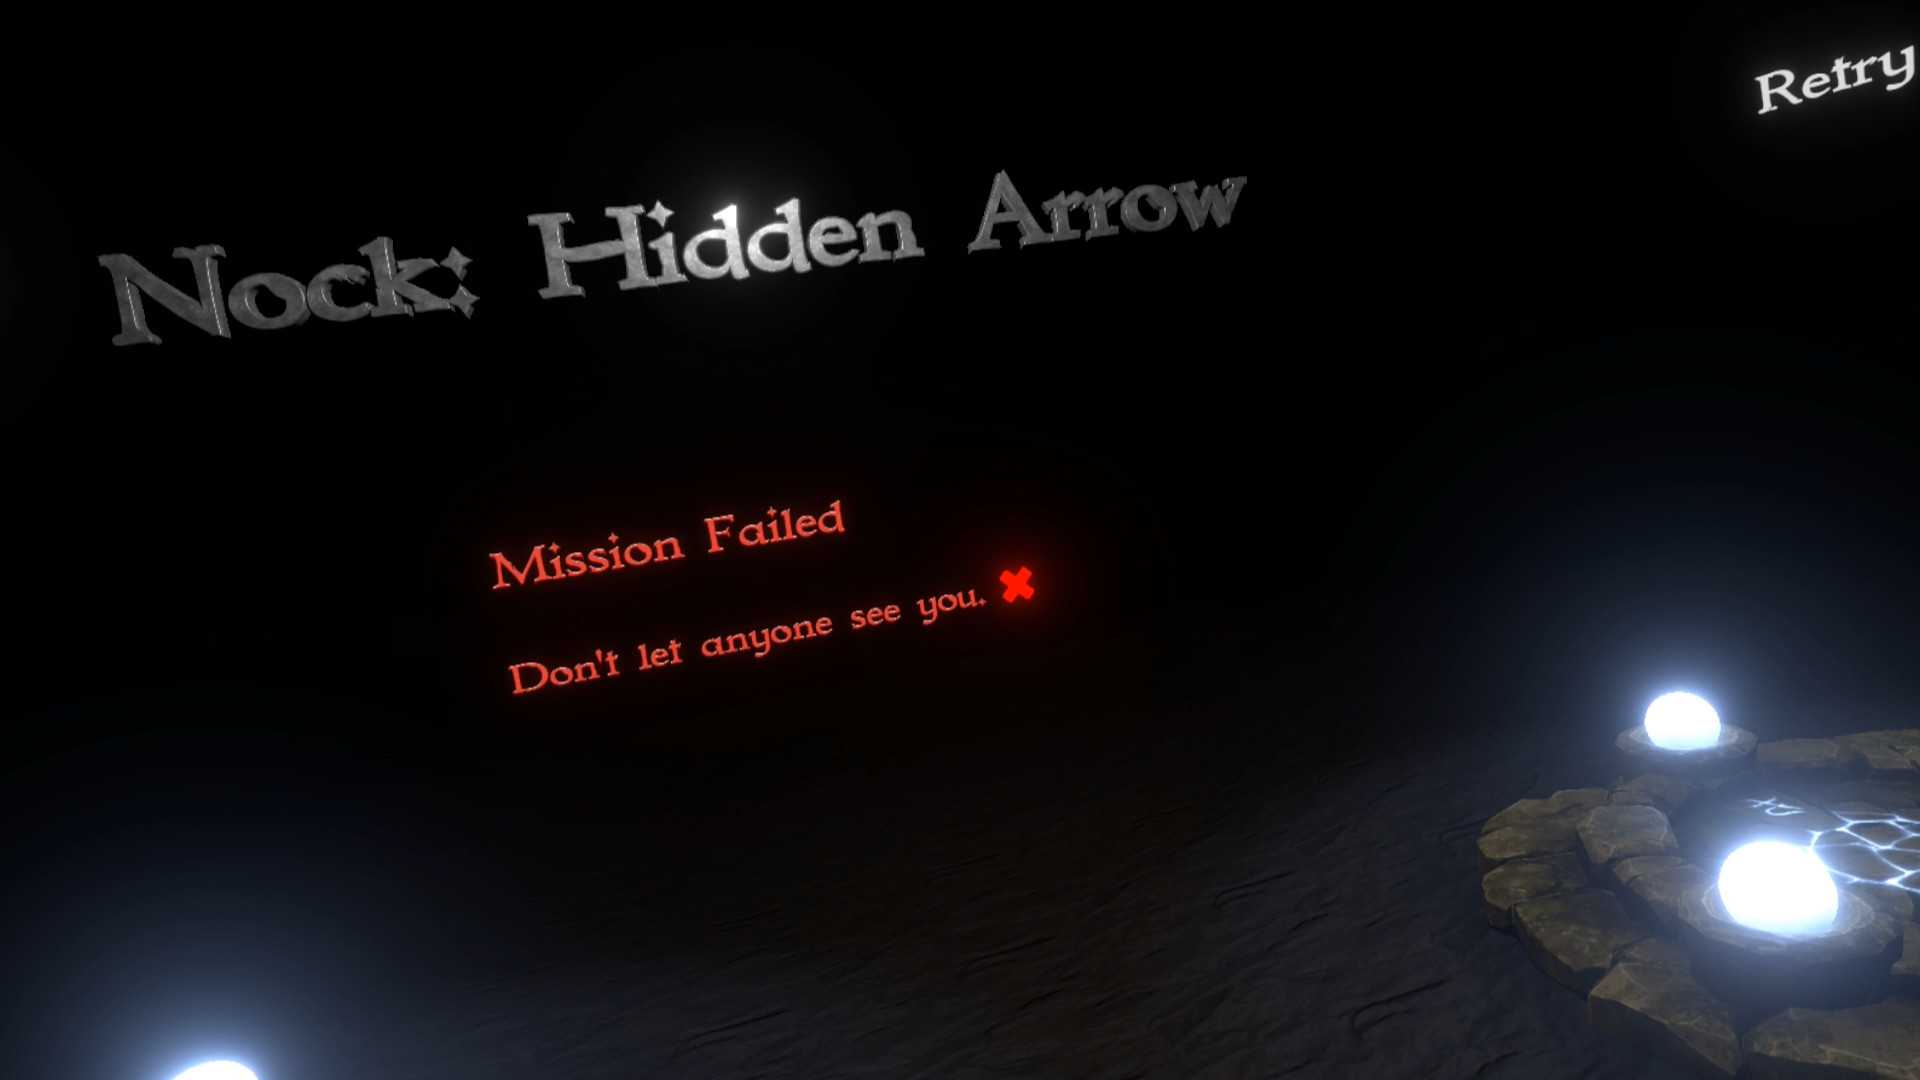 Nock: Hidden Arrow